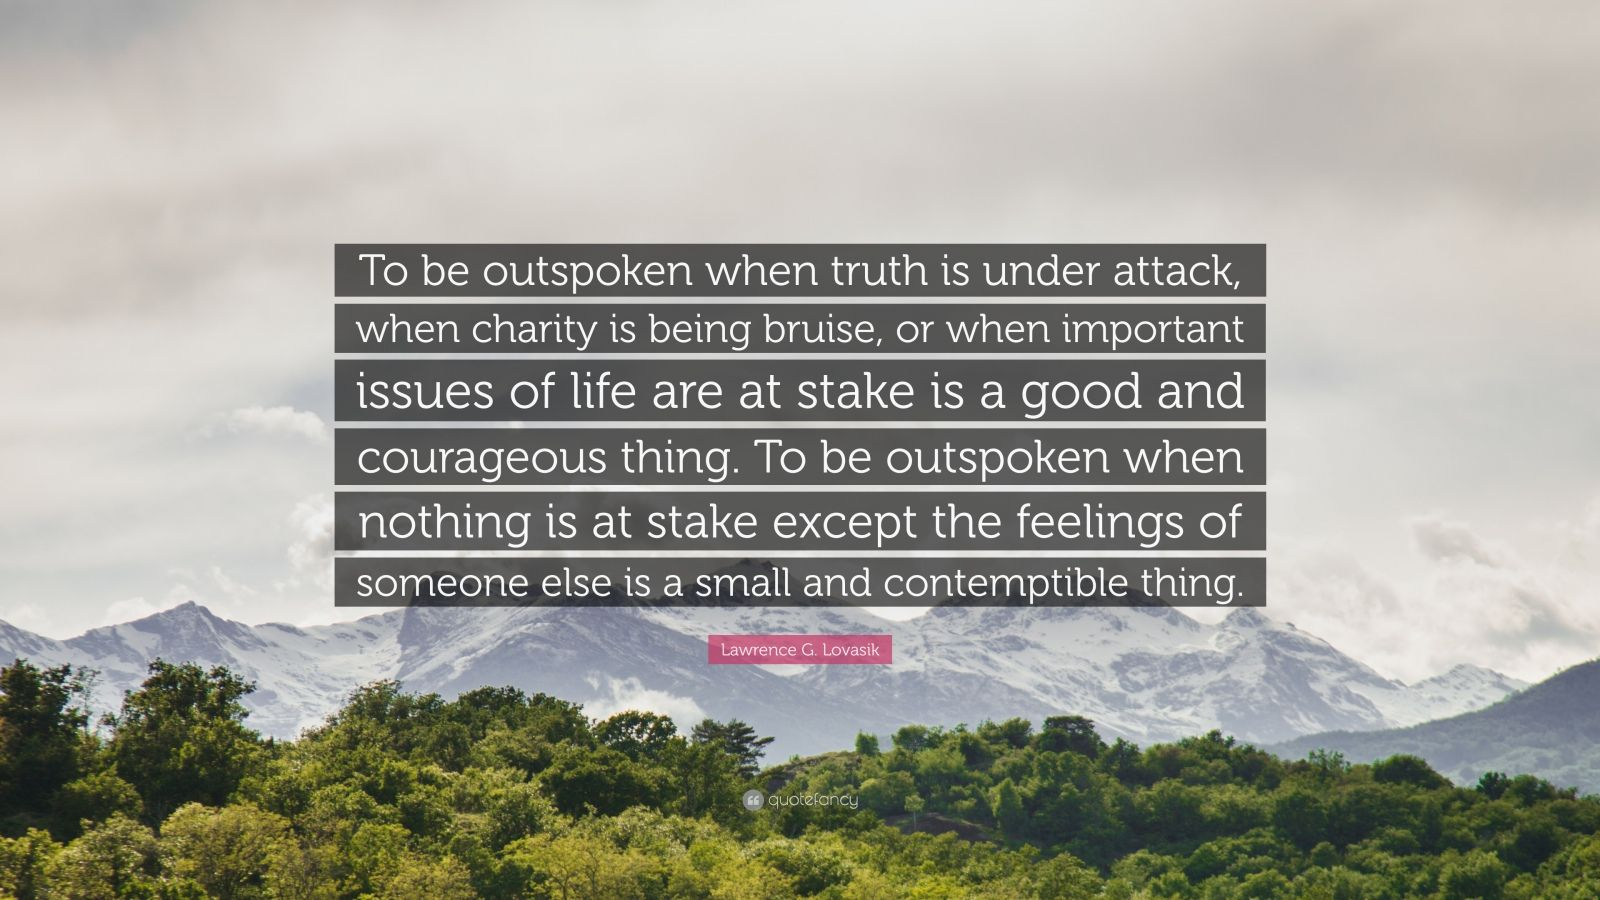 "Lawrence G. Lovasik Quote: ""To be outspoken when truth is under attack, when charity is being bruise, or when important issues of life are at stake is a good and courageous thing. To be outspoken when nothing is at stake except the feelings of someone else is a small and contemptible thing."""